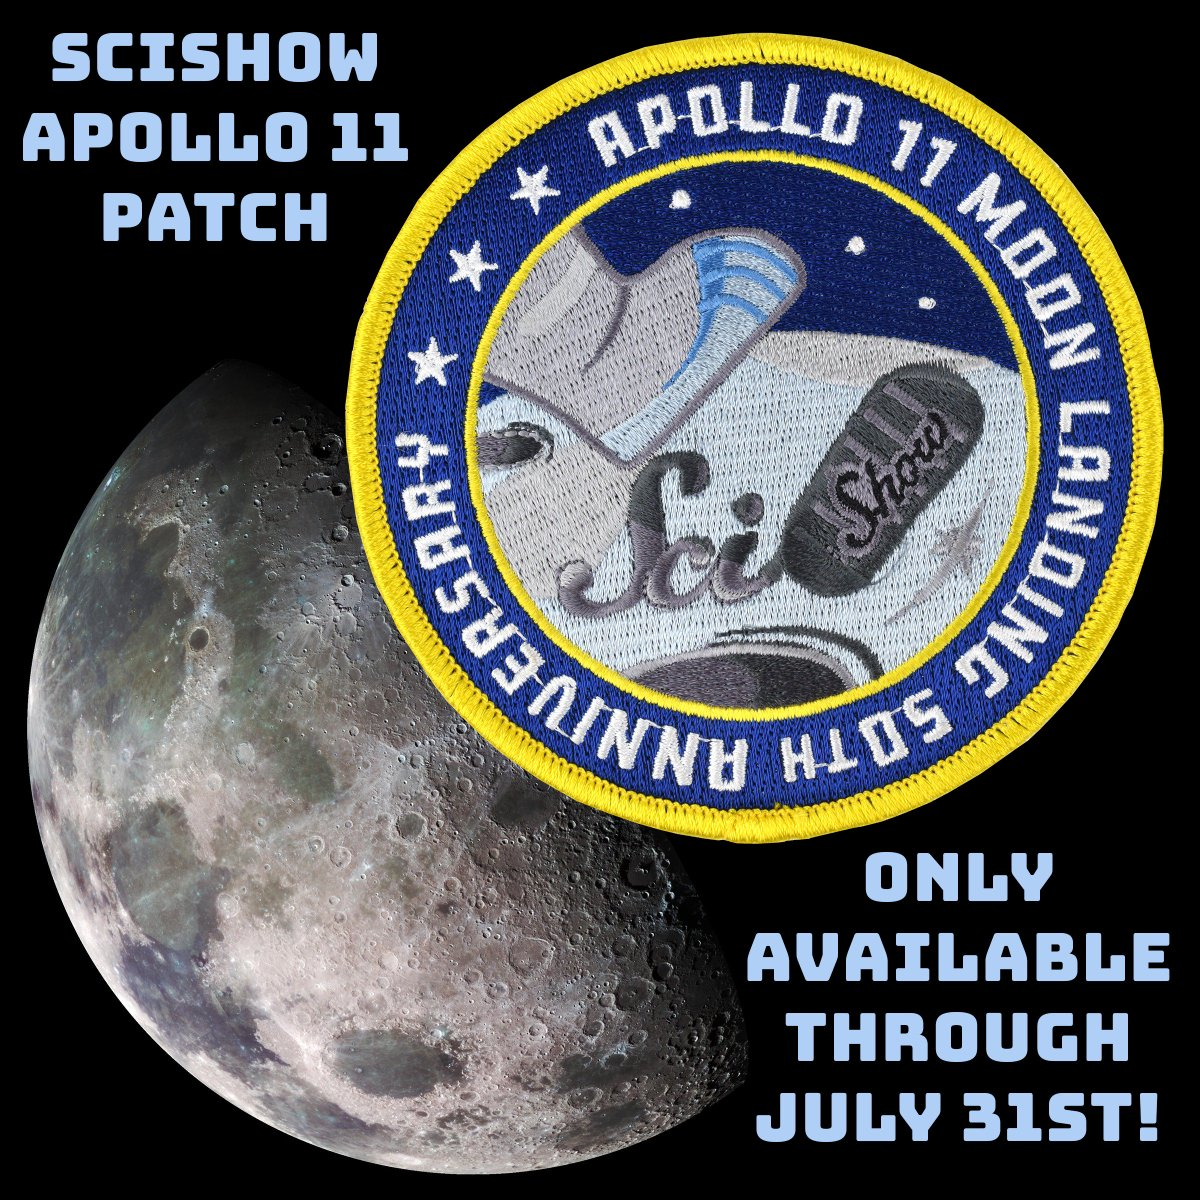 To commemorate the 50th anniversary of the Appolo 11 mission @SciShow has a limited edition patch! Grab it before July 31! bit.ly/2Y6LjRJ